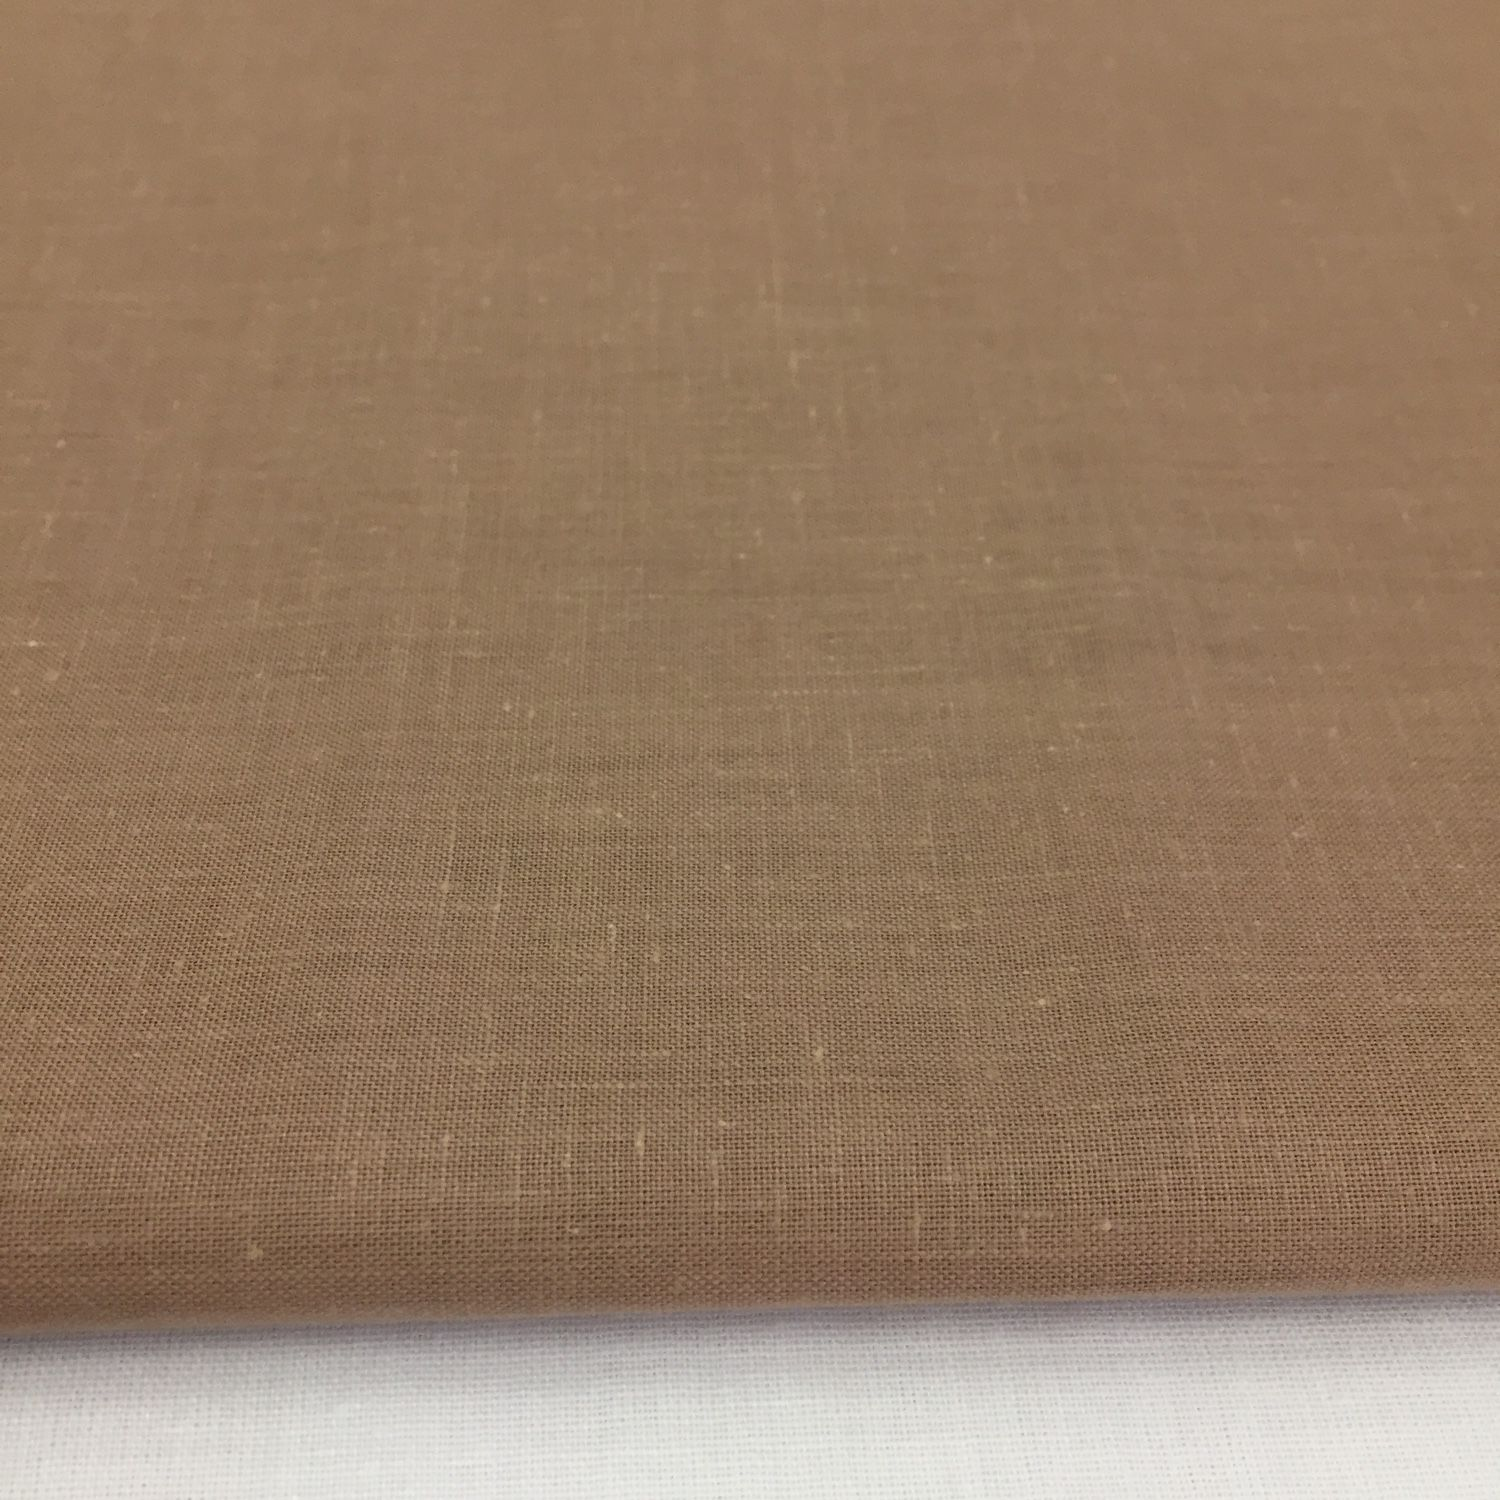 100% cotton, Poland, brown, Fabric, Moscow,  Фото №1